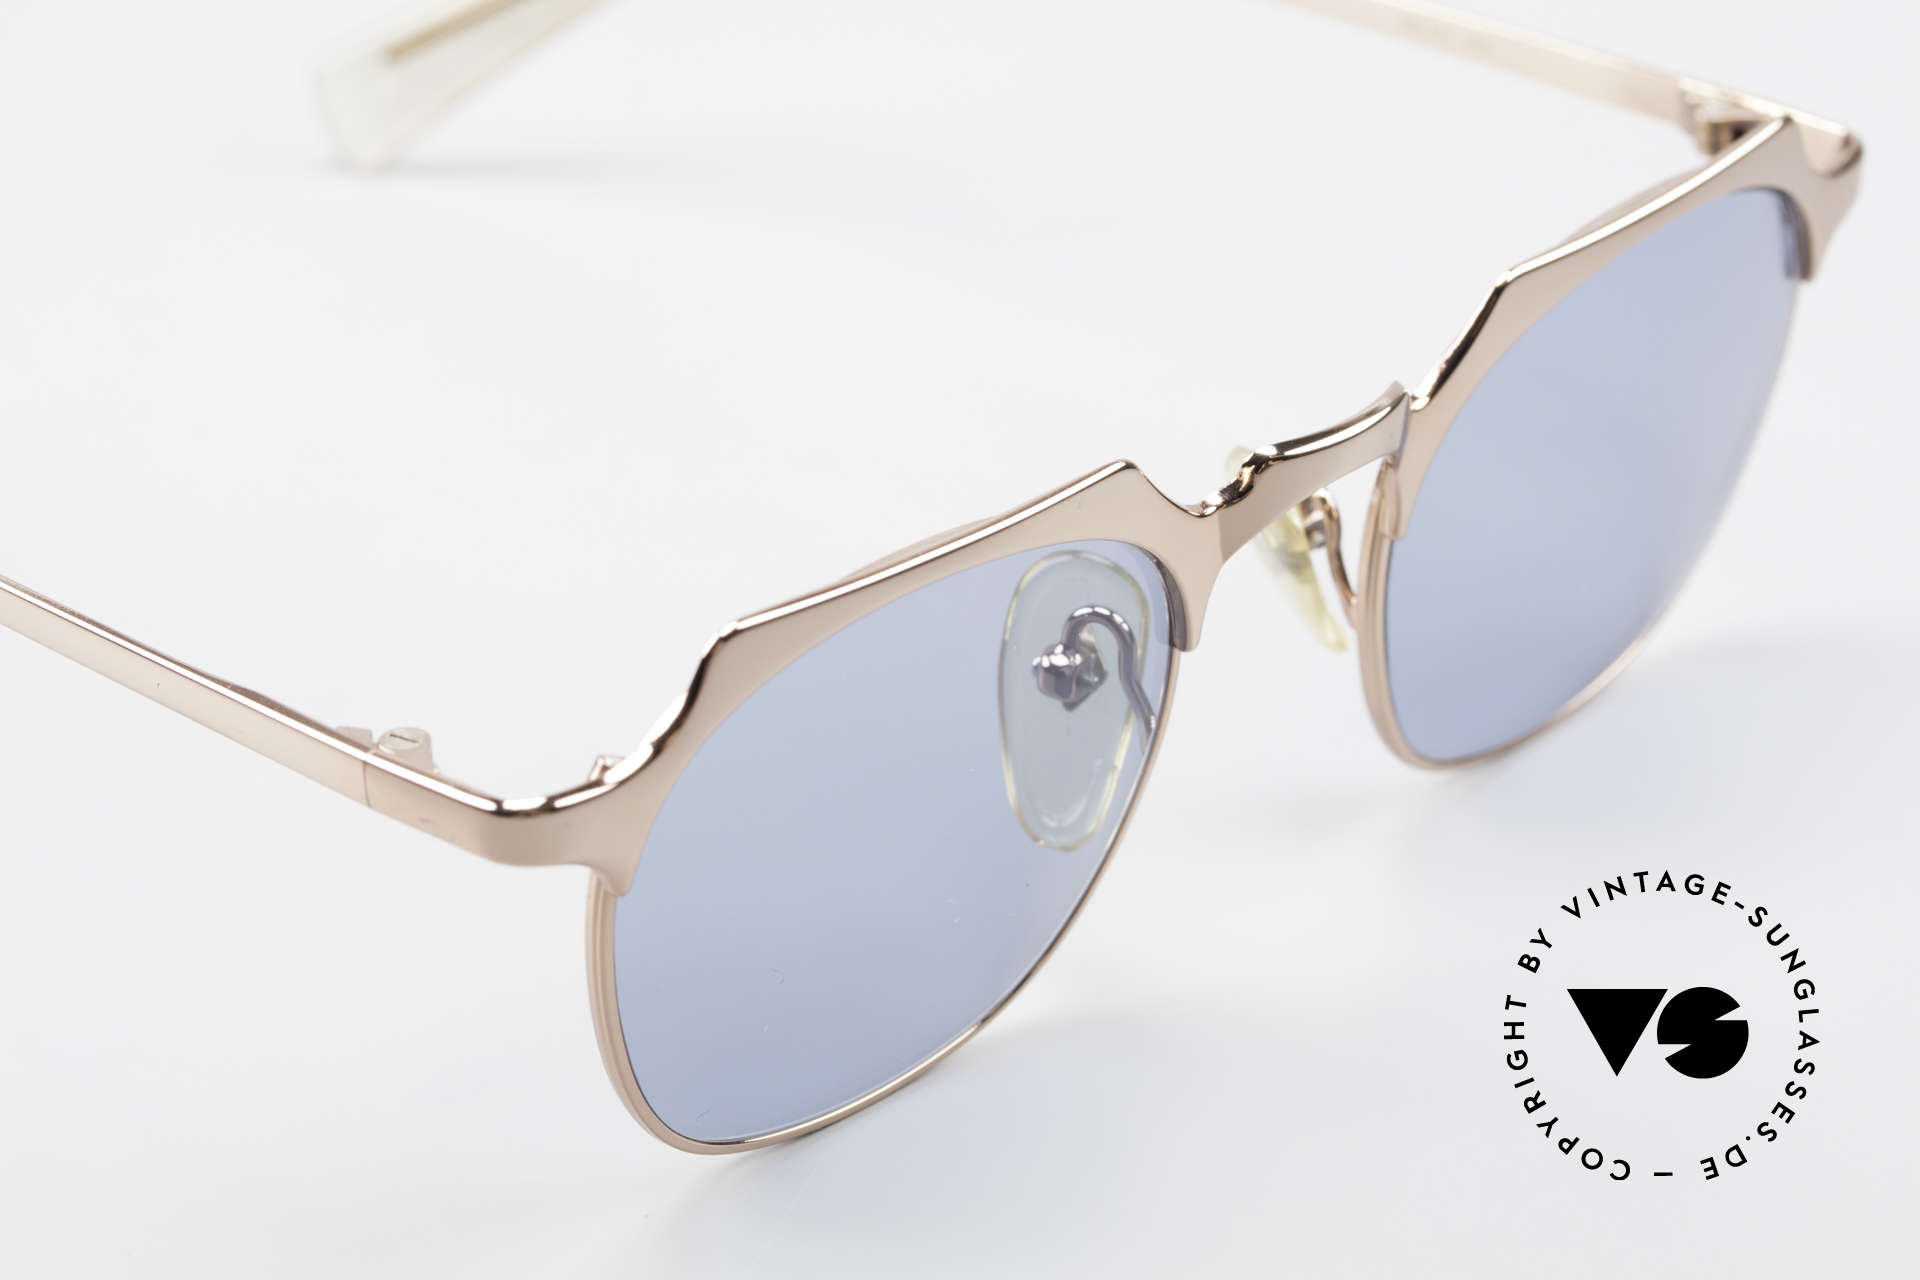 Jean Paul Gaultier 57-0171 Panto Designer Sunglasses, NO RETRO fashion, but a genuine 25 years old rarity, Made for Men and Women